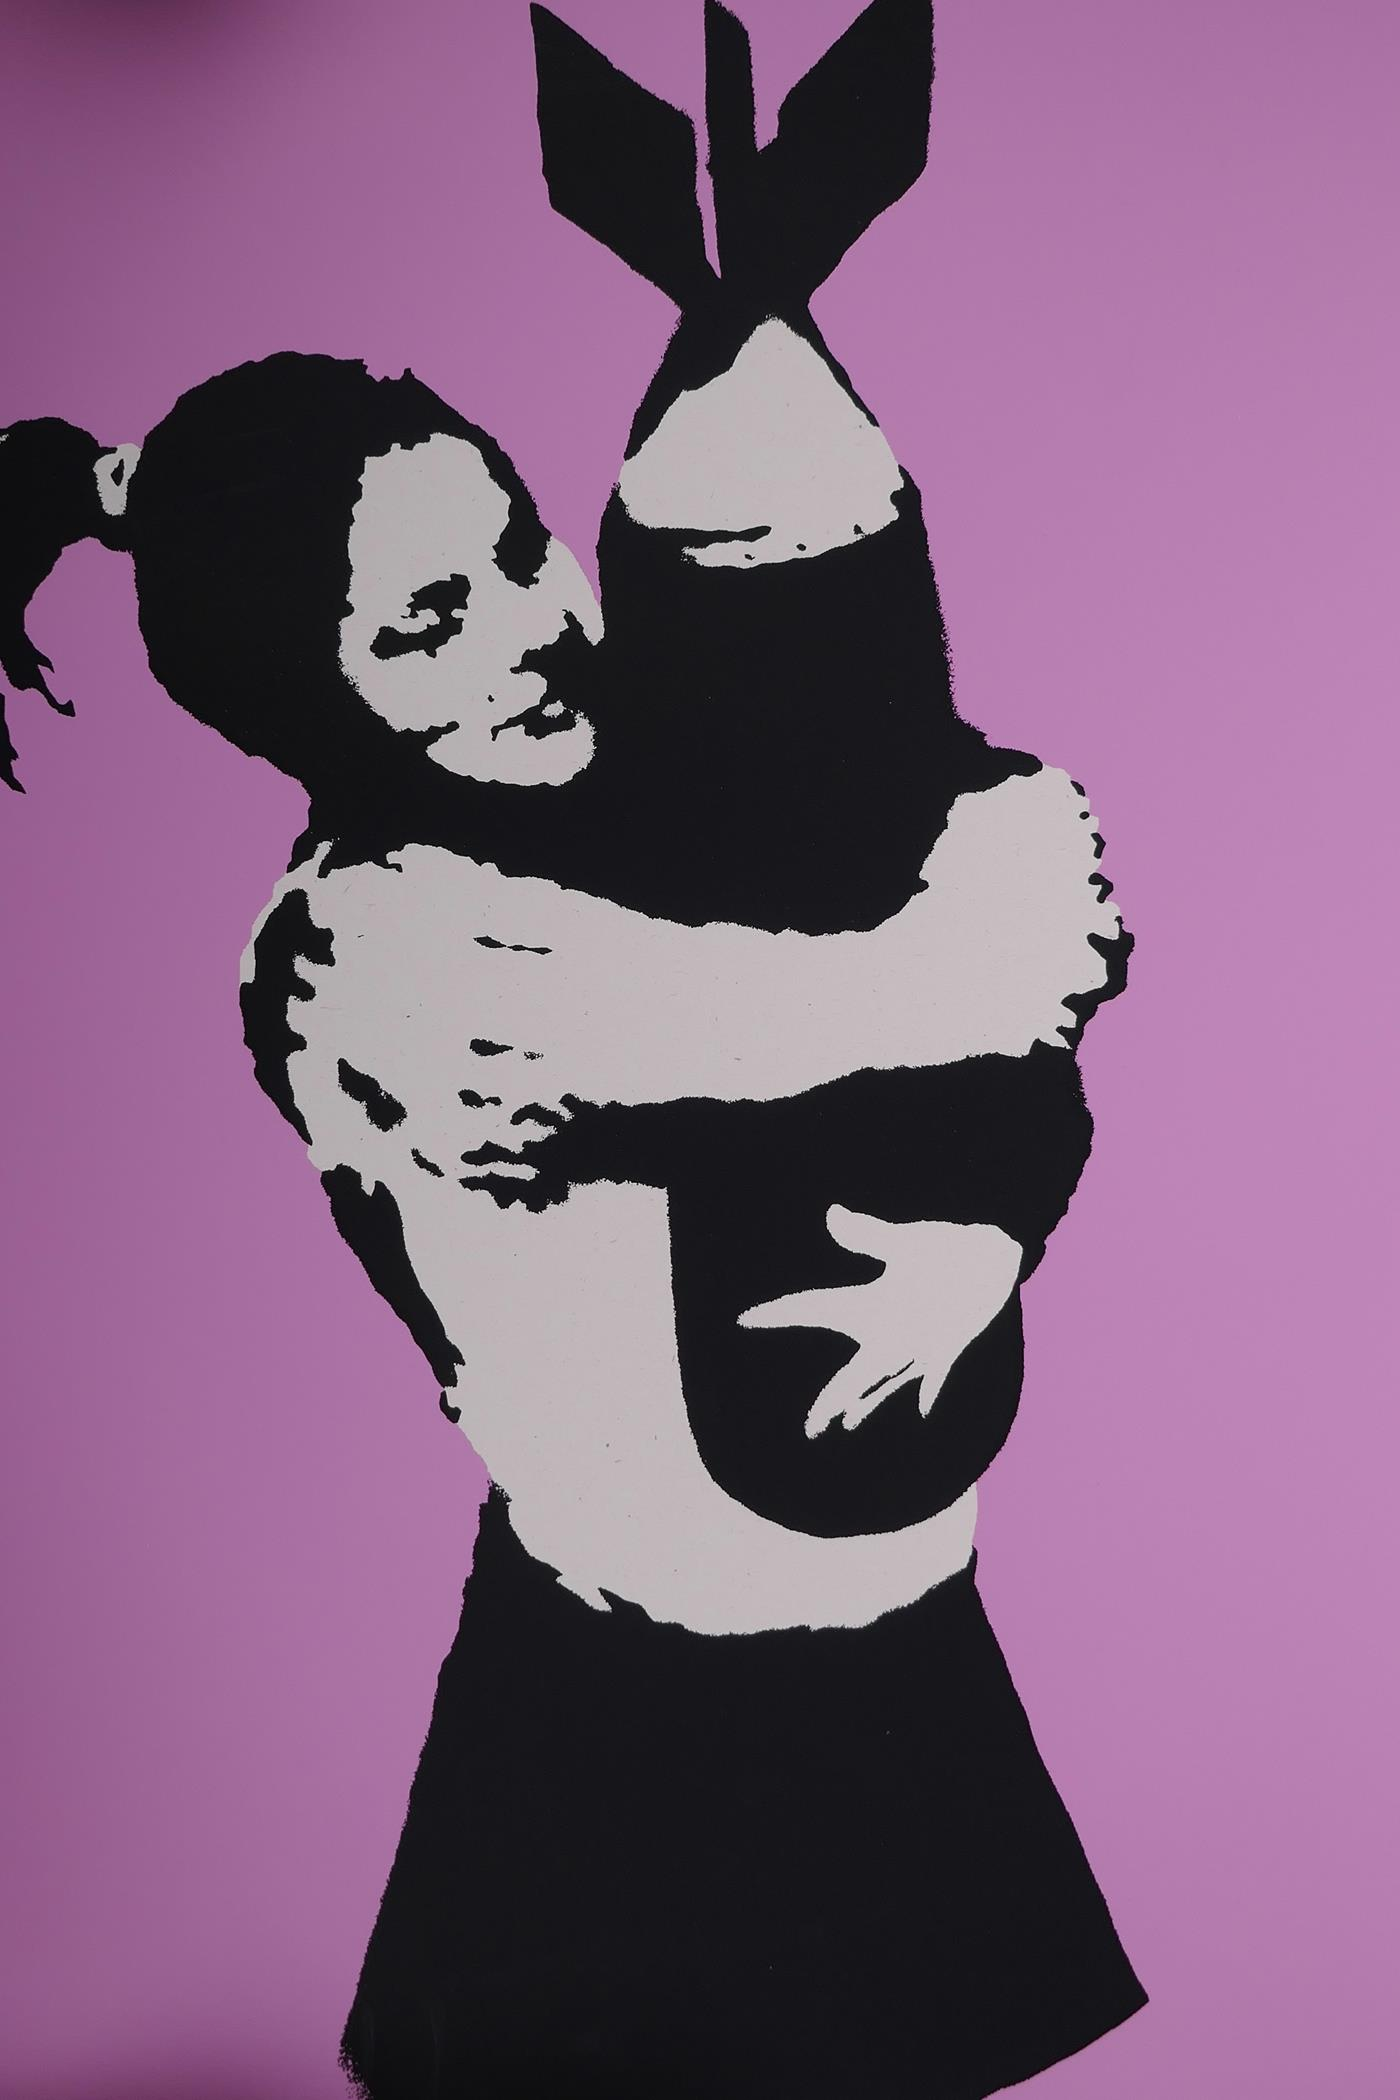 Banksy, 'Bomb Hunger', limited edition print by the West Country Prince, 66/500, with stamps